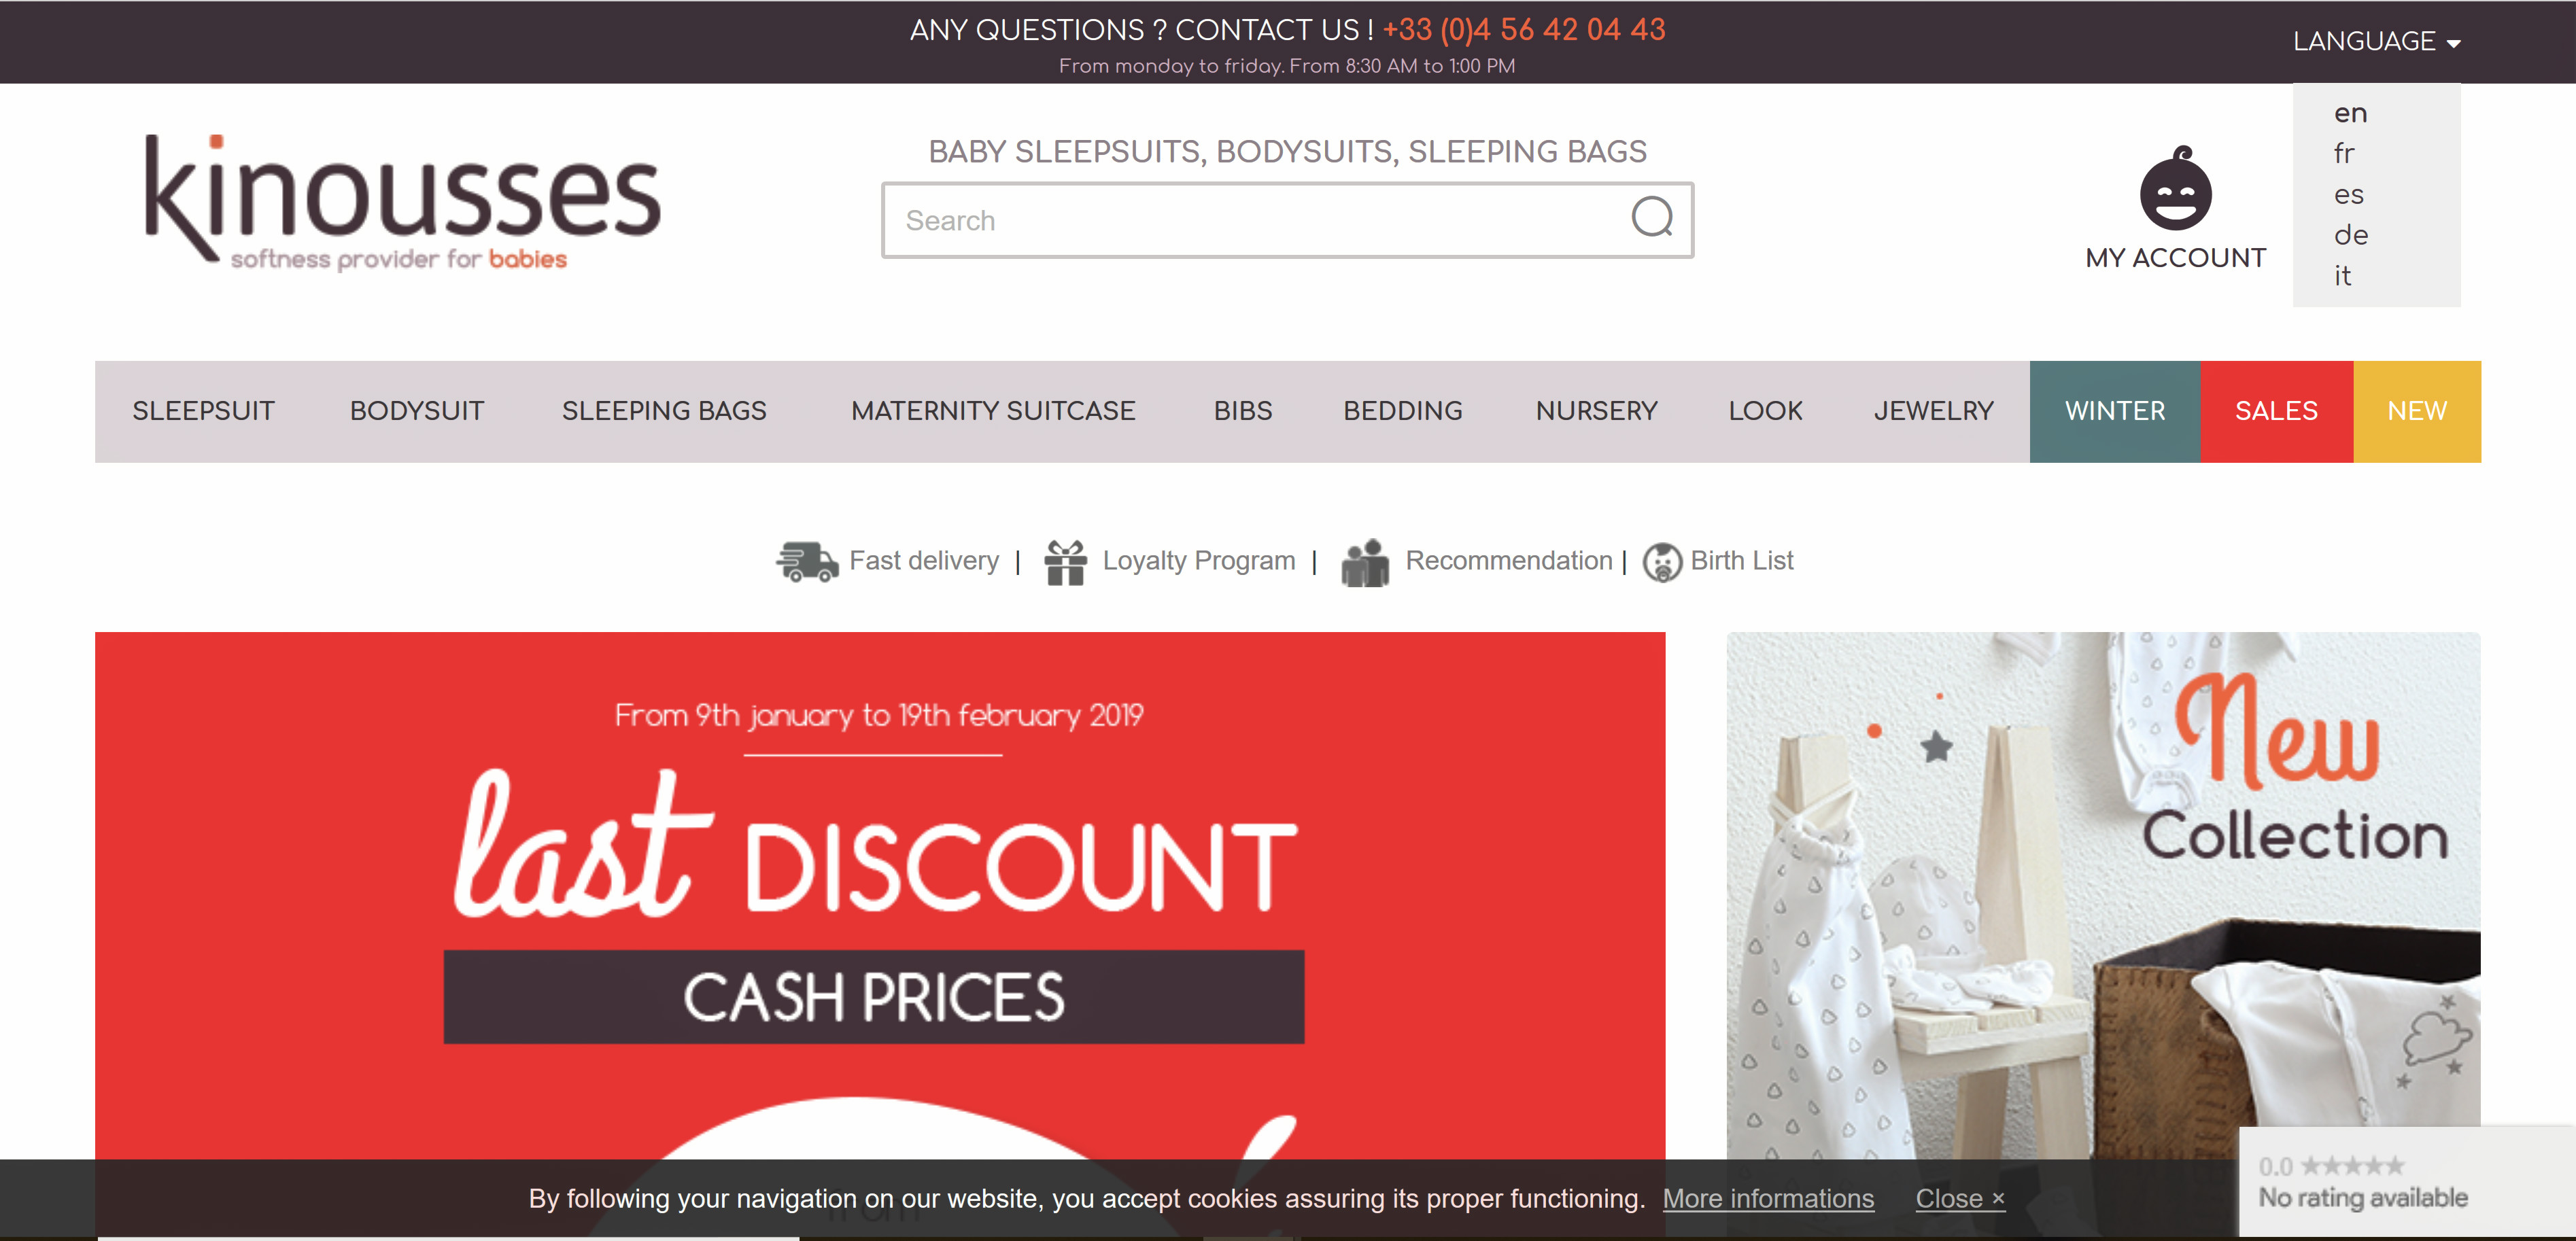 Prestashop Vs Opencart: A Comparison Of Ecommerce Platforms